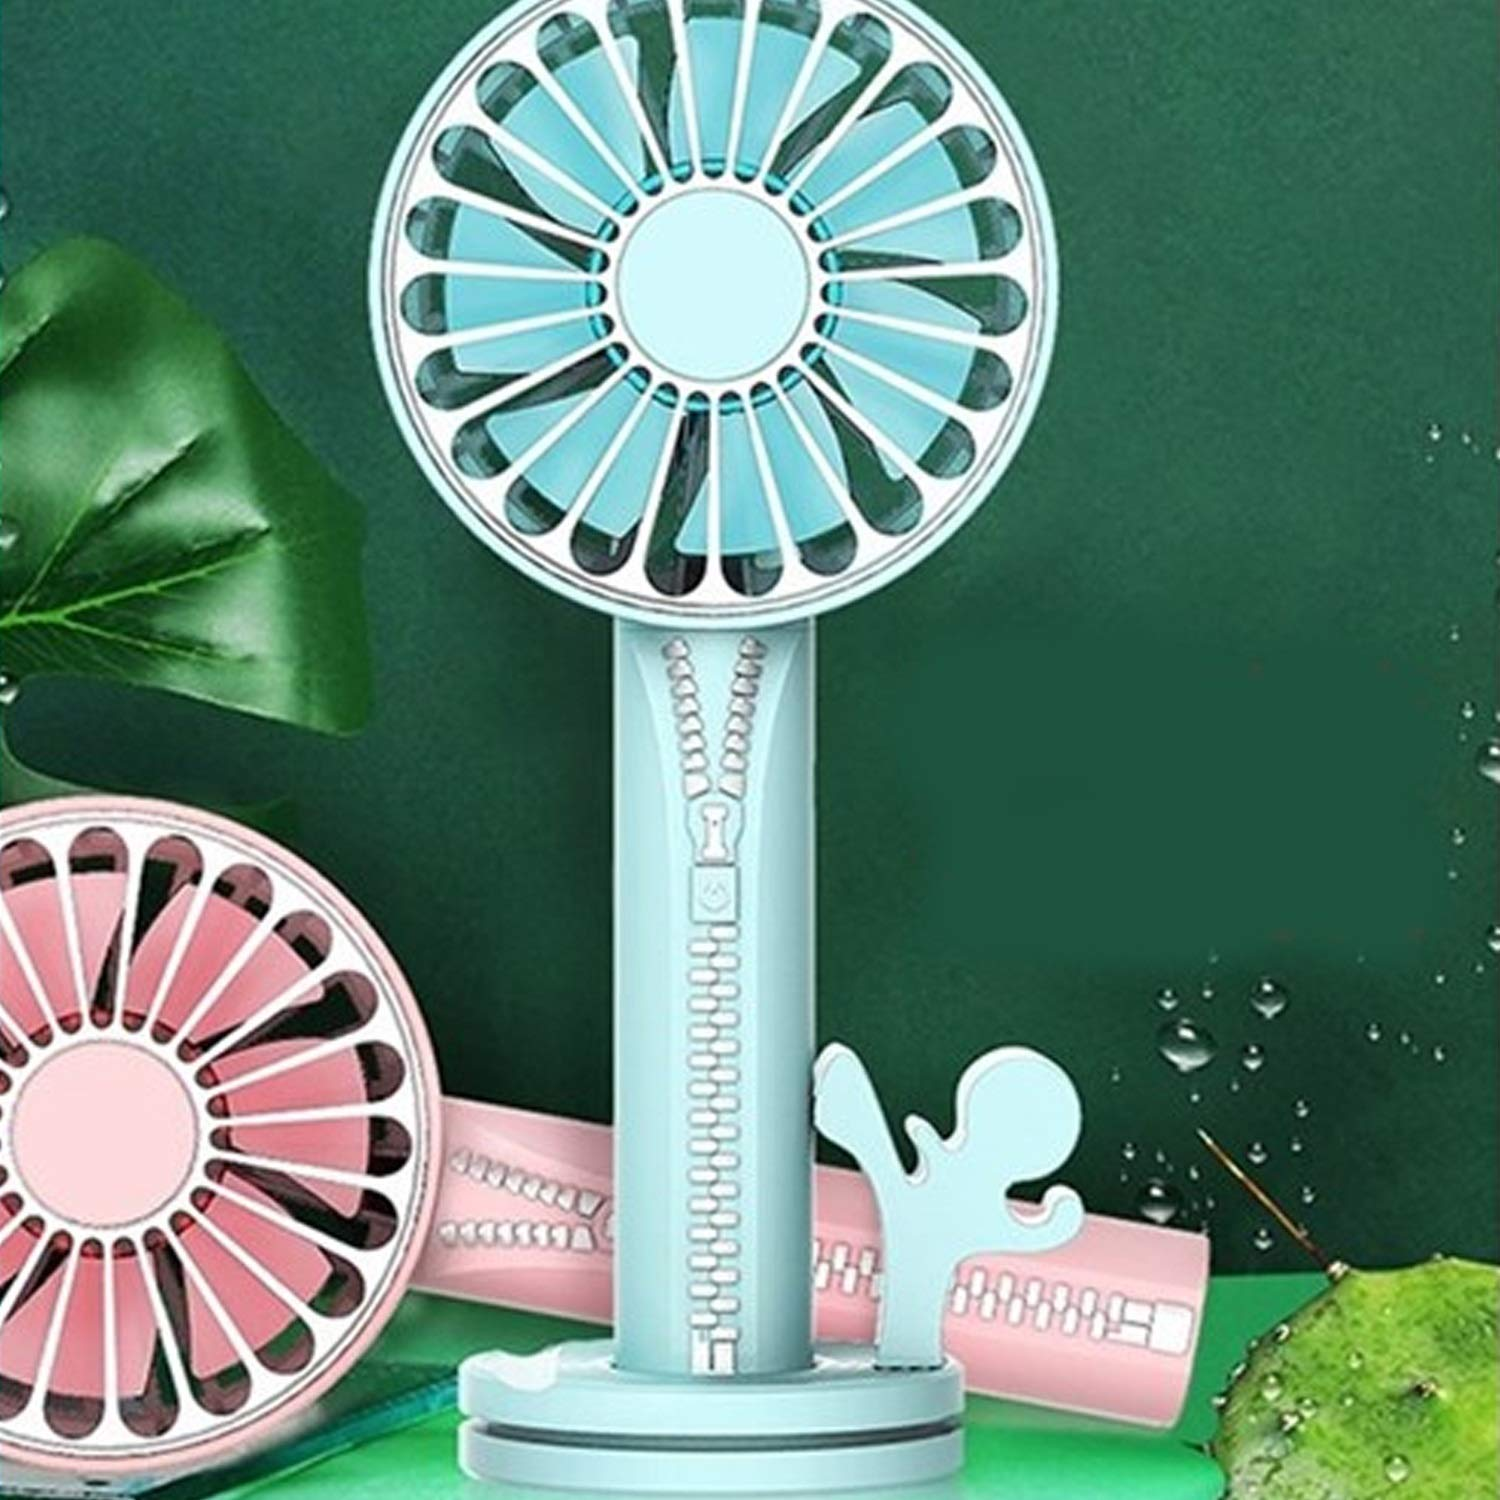 Convenient Mini USB Electric Fan Handheld Charging Electric Fan Mobile Phone Holder Mirror Multifunctional Electric Fan Power Supply Durable Color : Light Blue